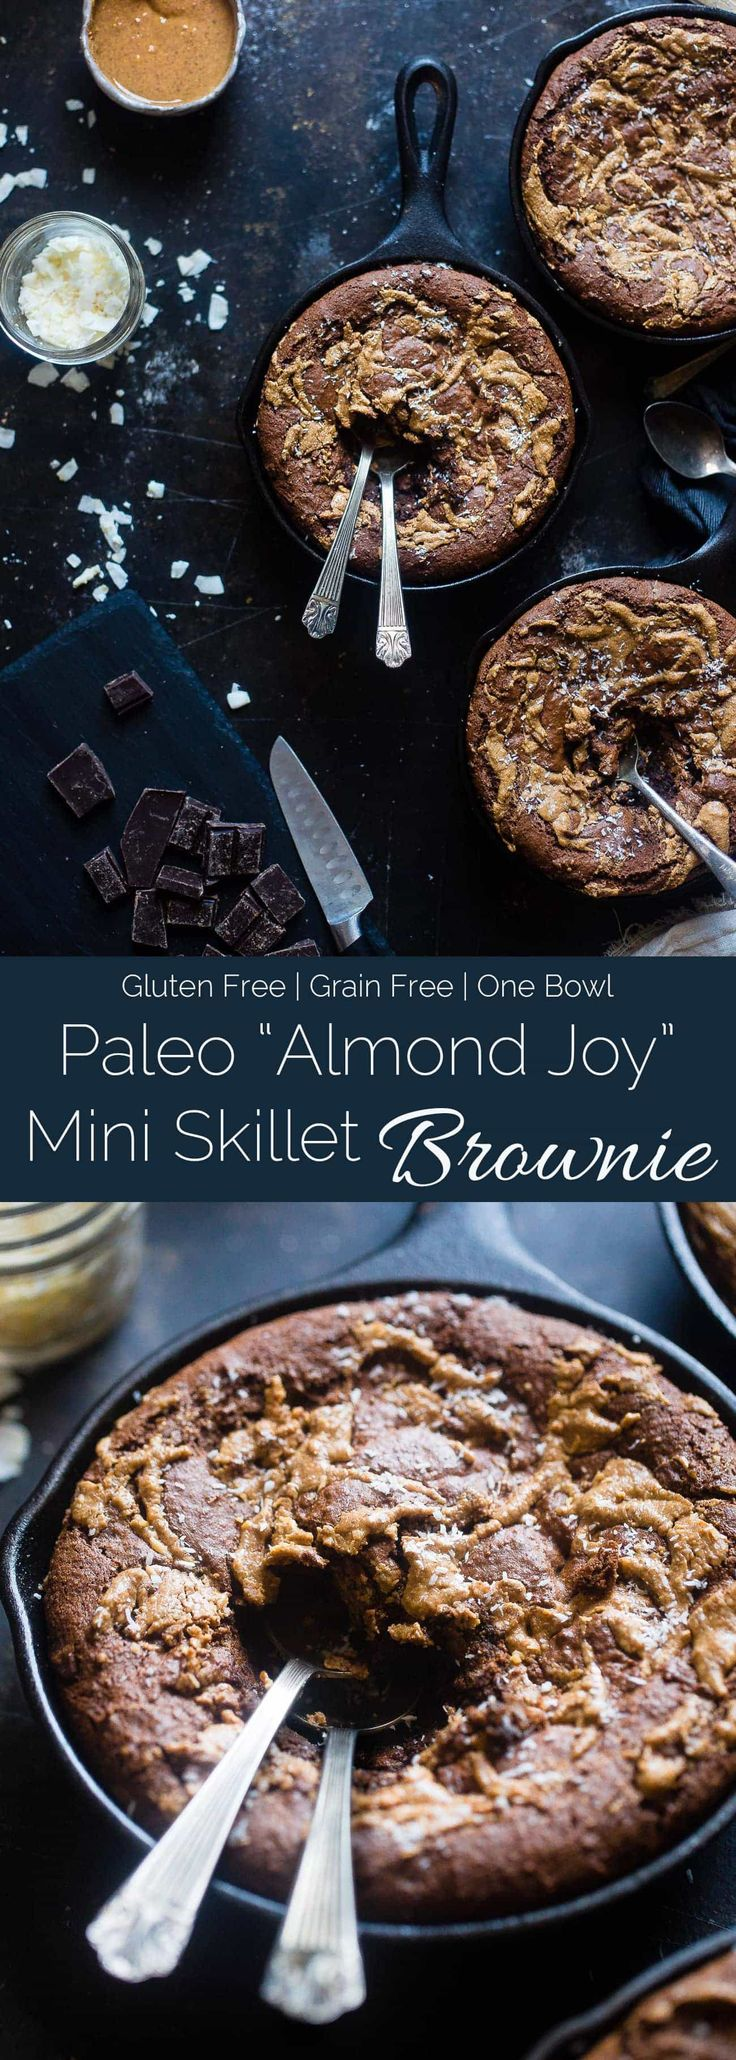 """Gluten Free """"Almond Joy"""" Skillet Brownies - These rich, fudgy coconut almond skillet brownies are made in one bowl! They're a grain free, healthier dessert that everyone will love!   Foodfaithfitness.com   @FoodFaithFit via @FoodFaithFit"""